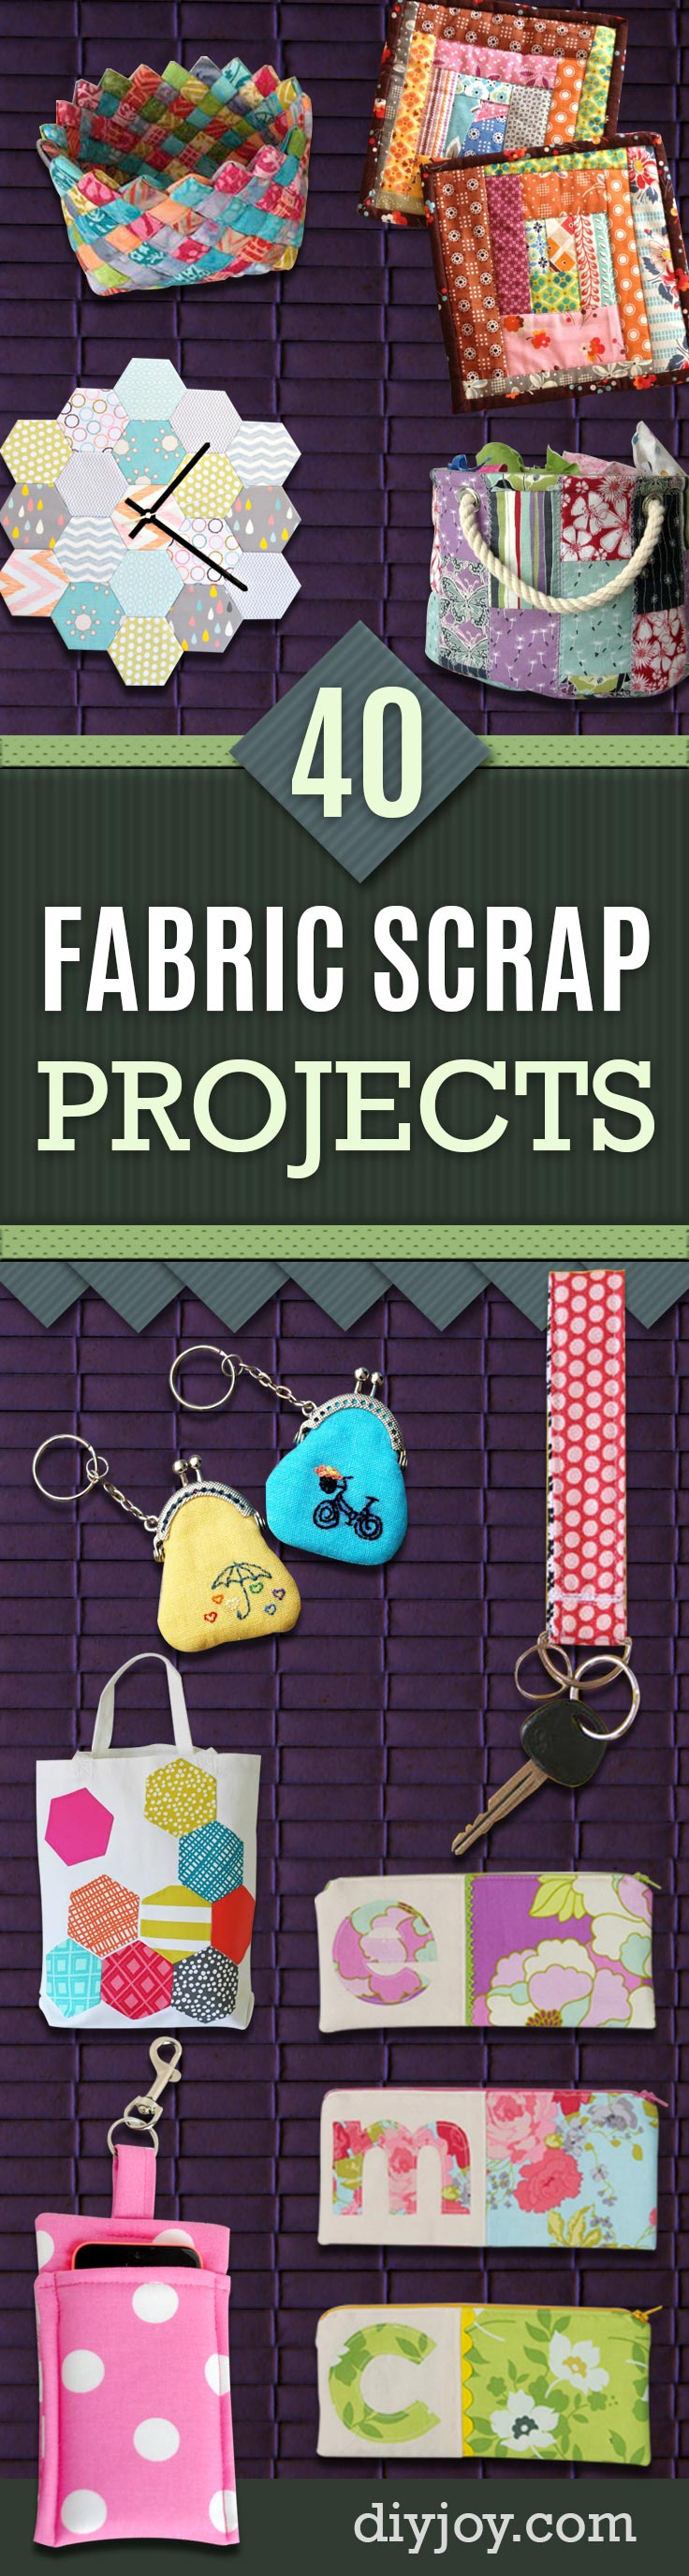 Easy Fabric Scrap Craft Ideas for Leftover Material from Quilting and Sewing Projects -Cool Crafts You Can Make With Fabric Scraps - Creative DIY Sewing Projects and Things to Do With Leftover Fabric - Ideas, Tutorials and Patterns #sewing #fabric #crafts